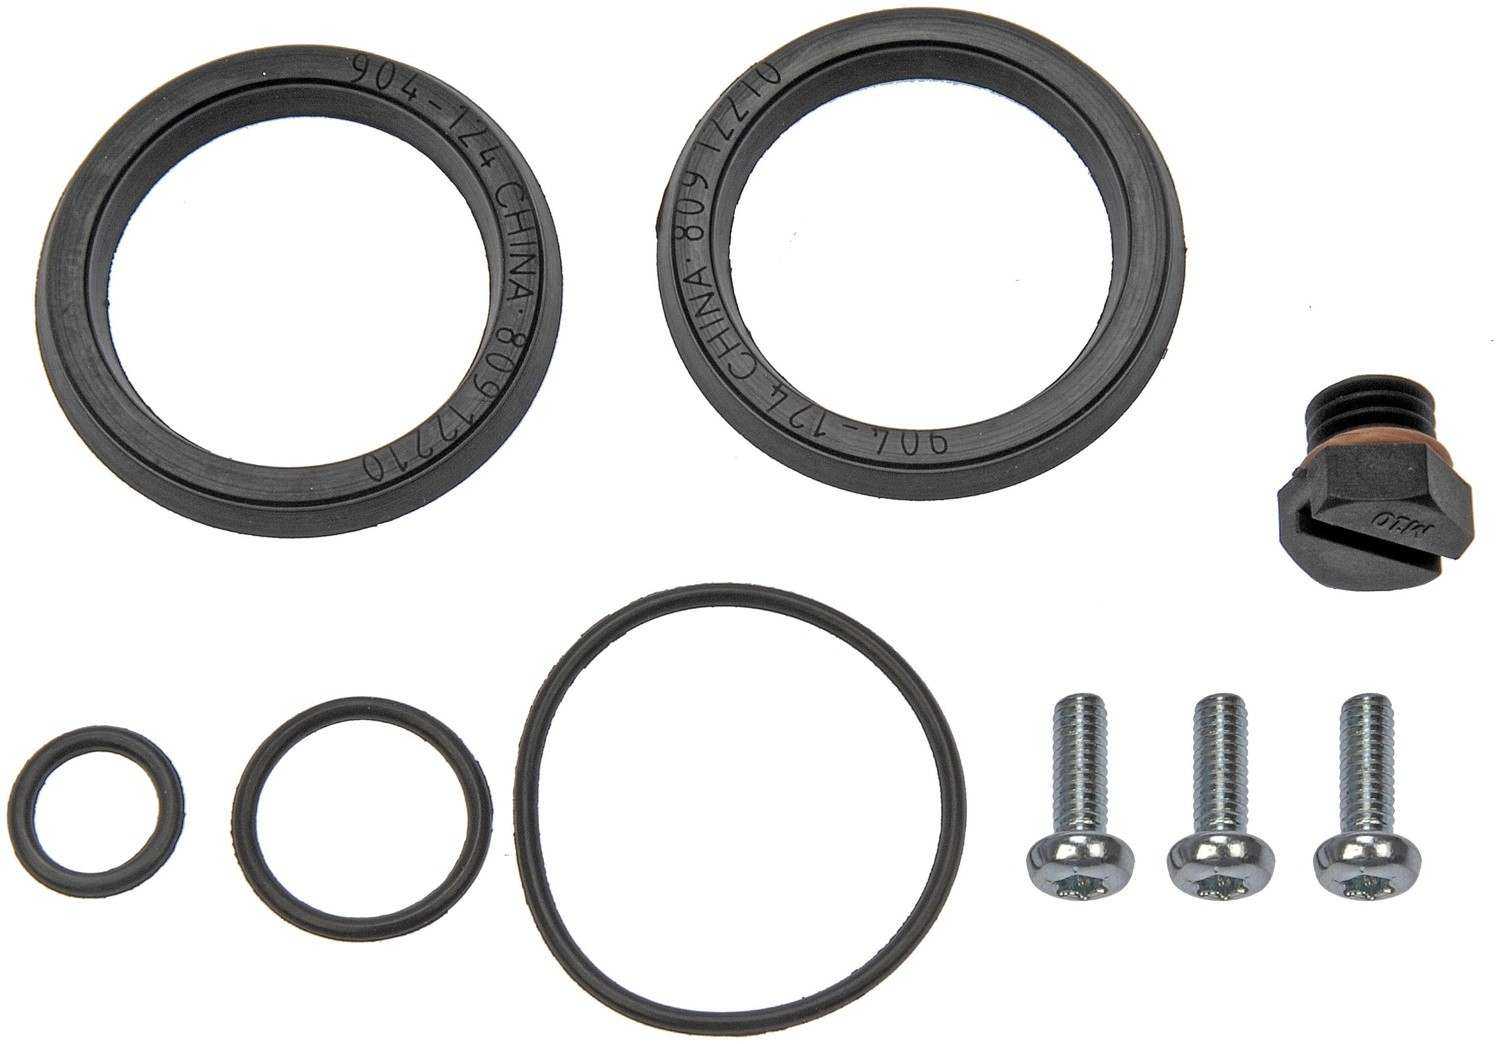 Fuel Filter Primer Housing Seal Kit GM 6.6L Dorman 904-124